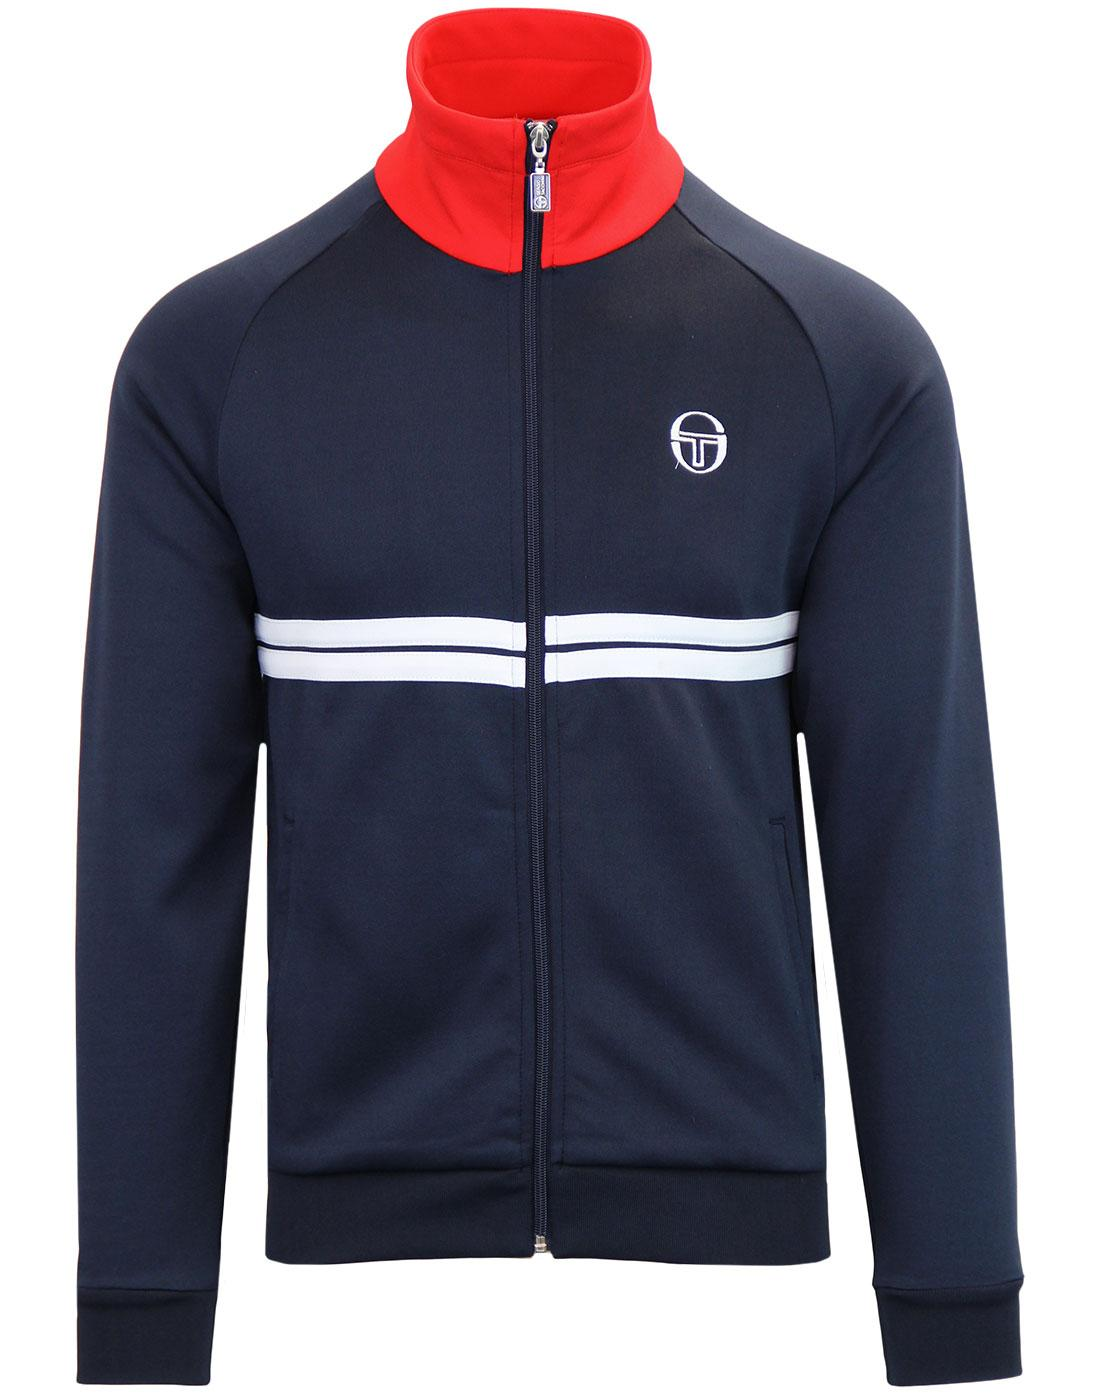 Dallas SERGIO TACCHINI Retro 80s McEnroe Track Top